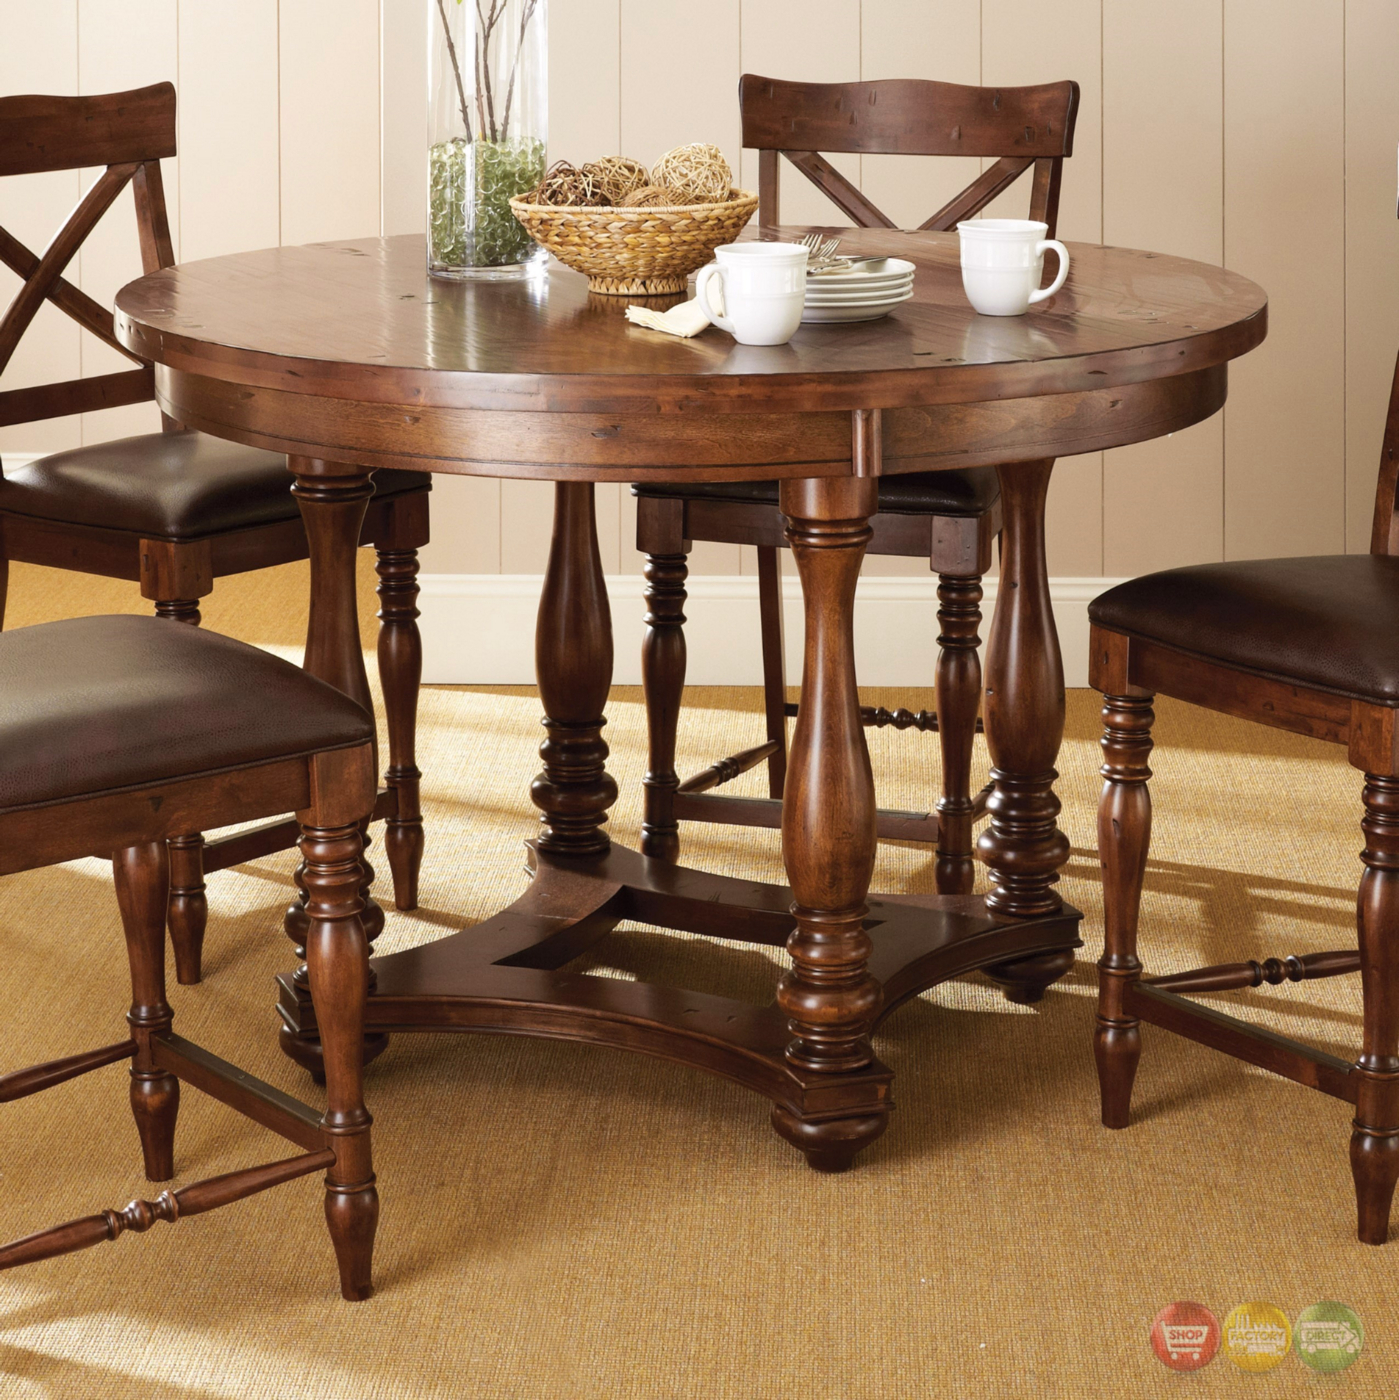 Wyndham Rustic Birch Round 54 Quot Counter Height Table In